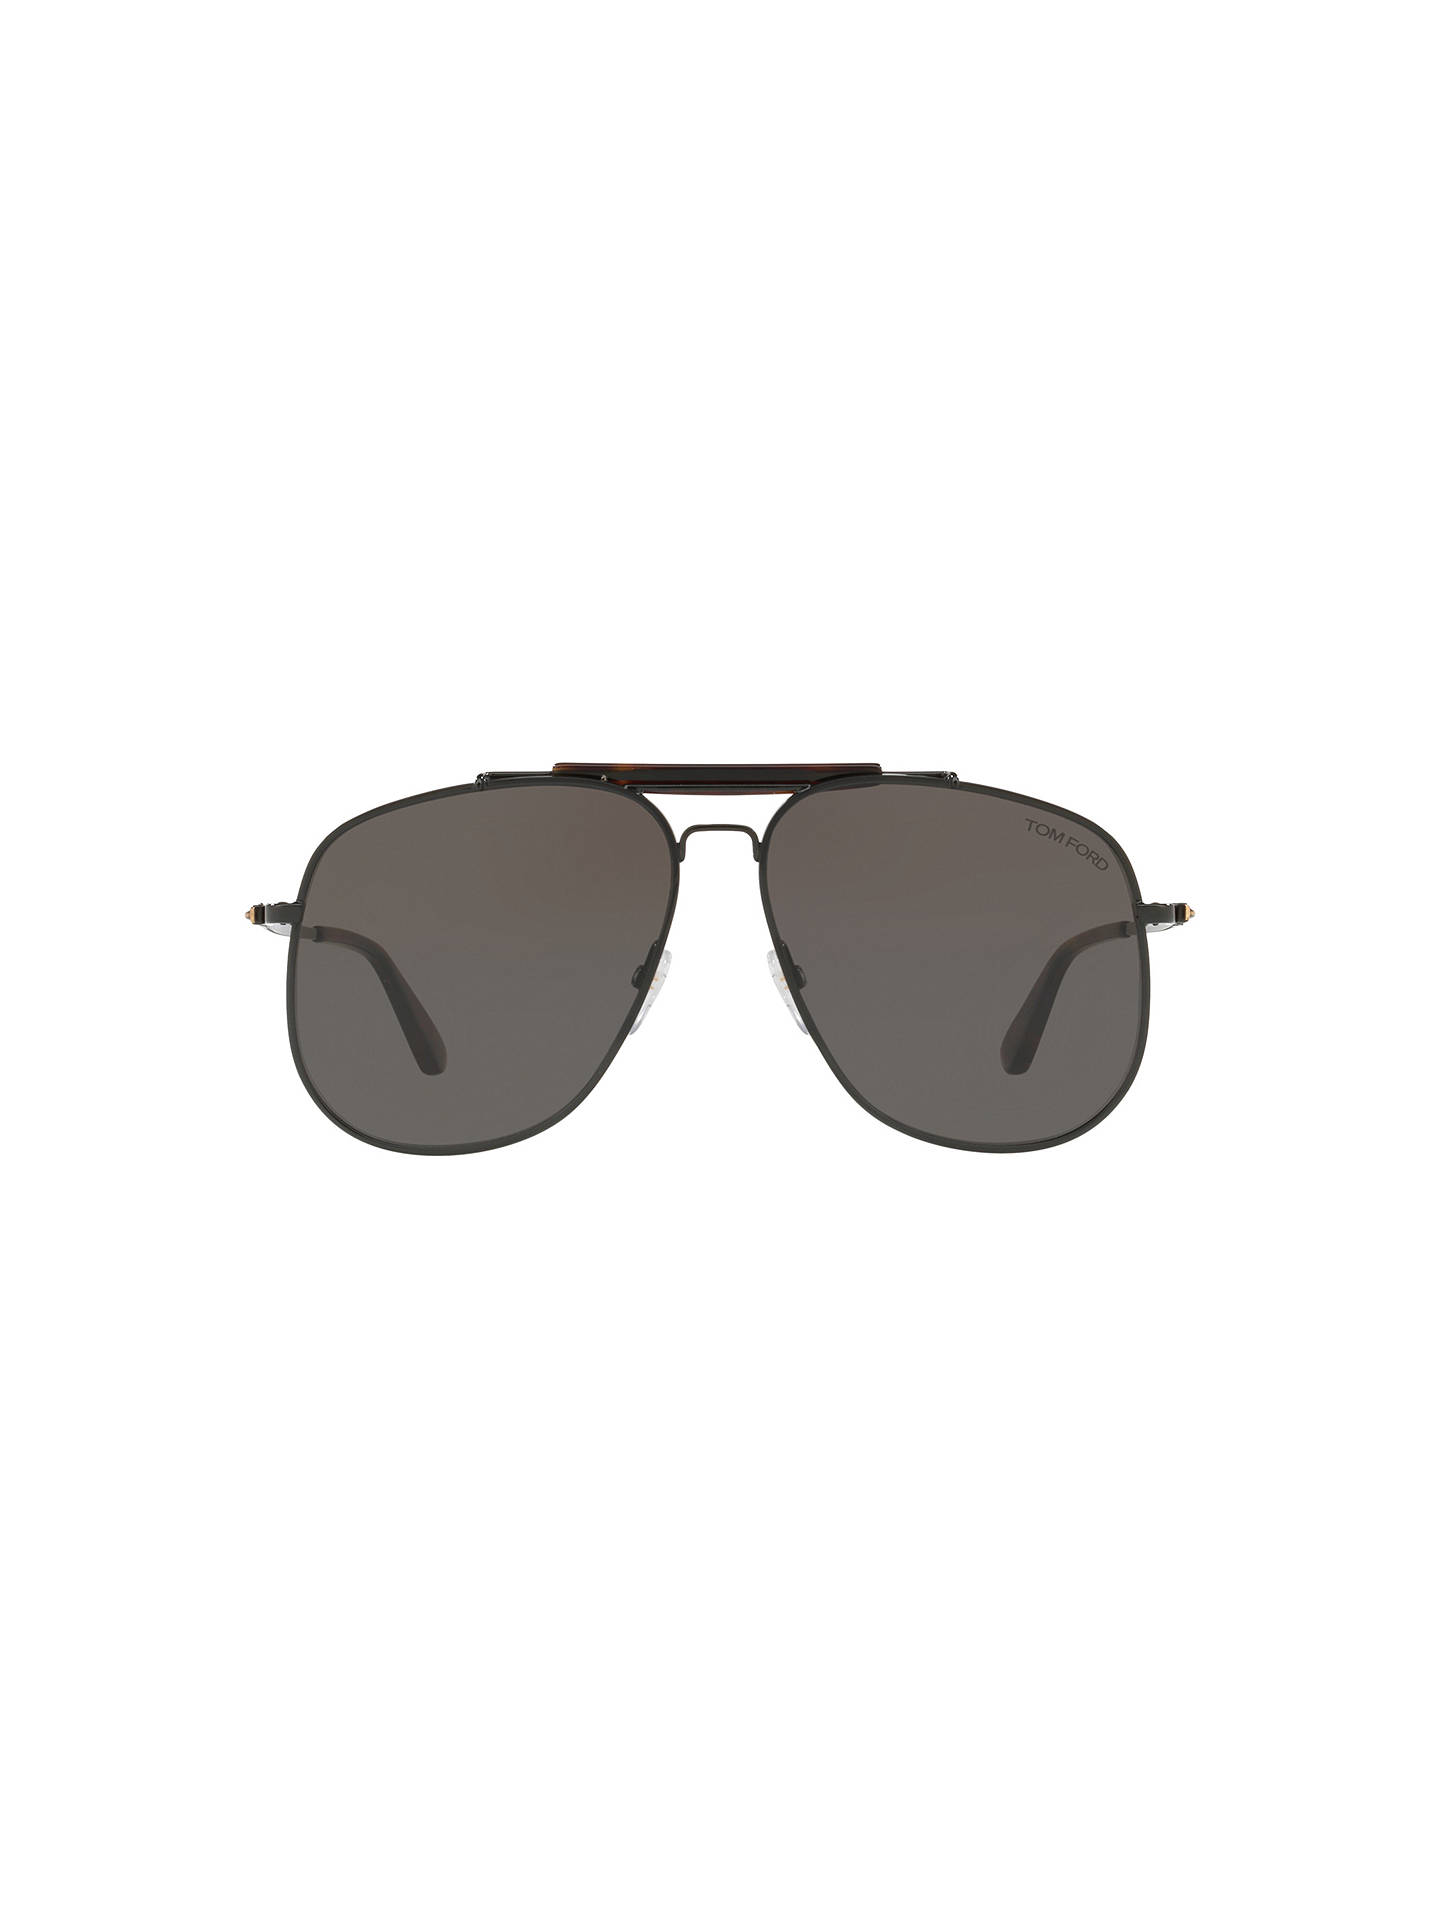 BuyTOM FORD FT0557 Connor Aviator Sunglasses, Black/Grey Online at johnlewis.com